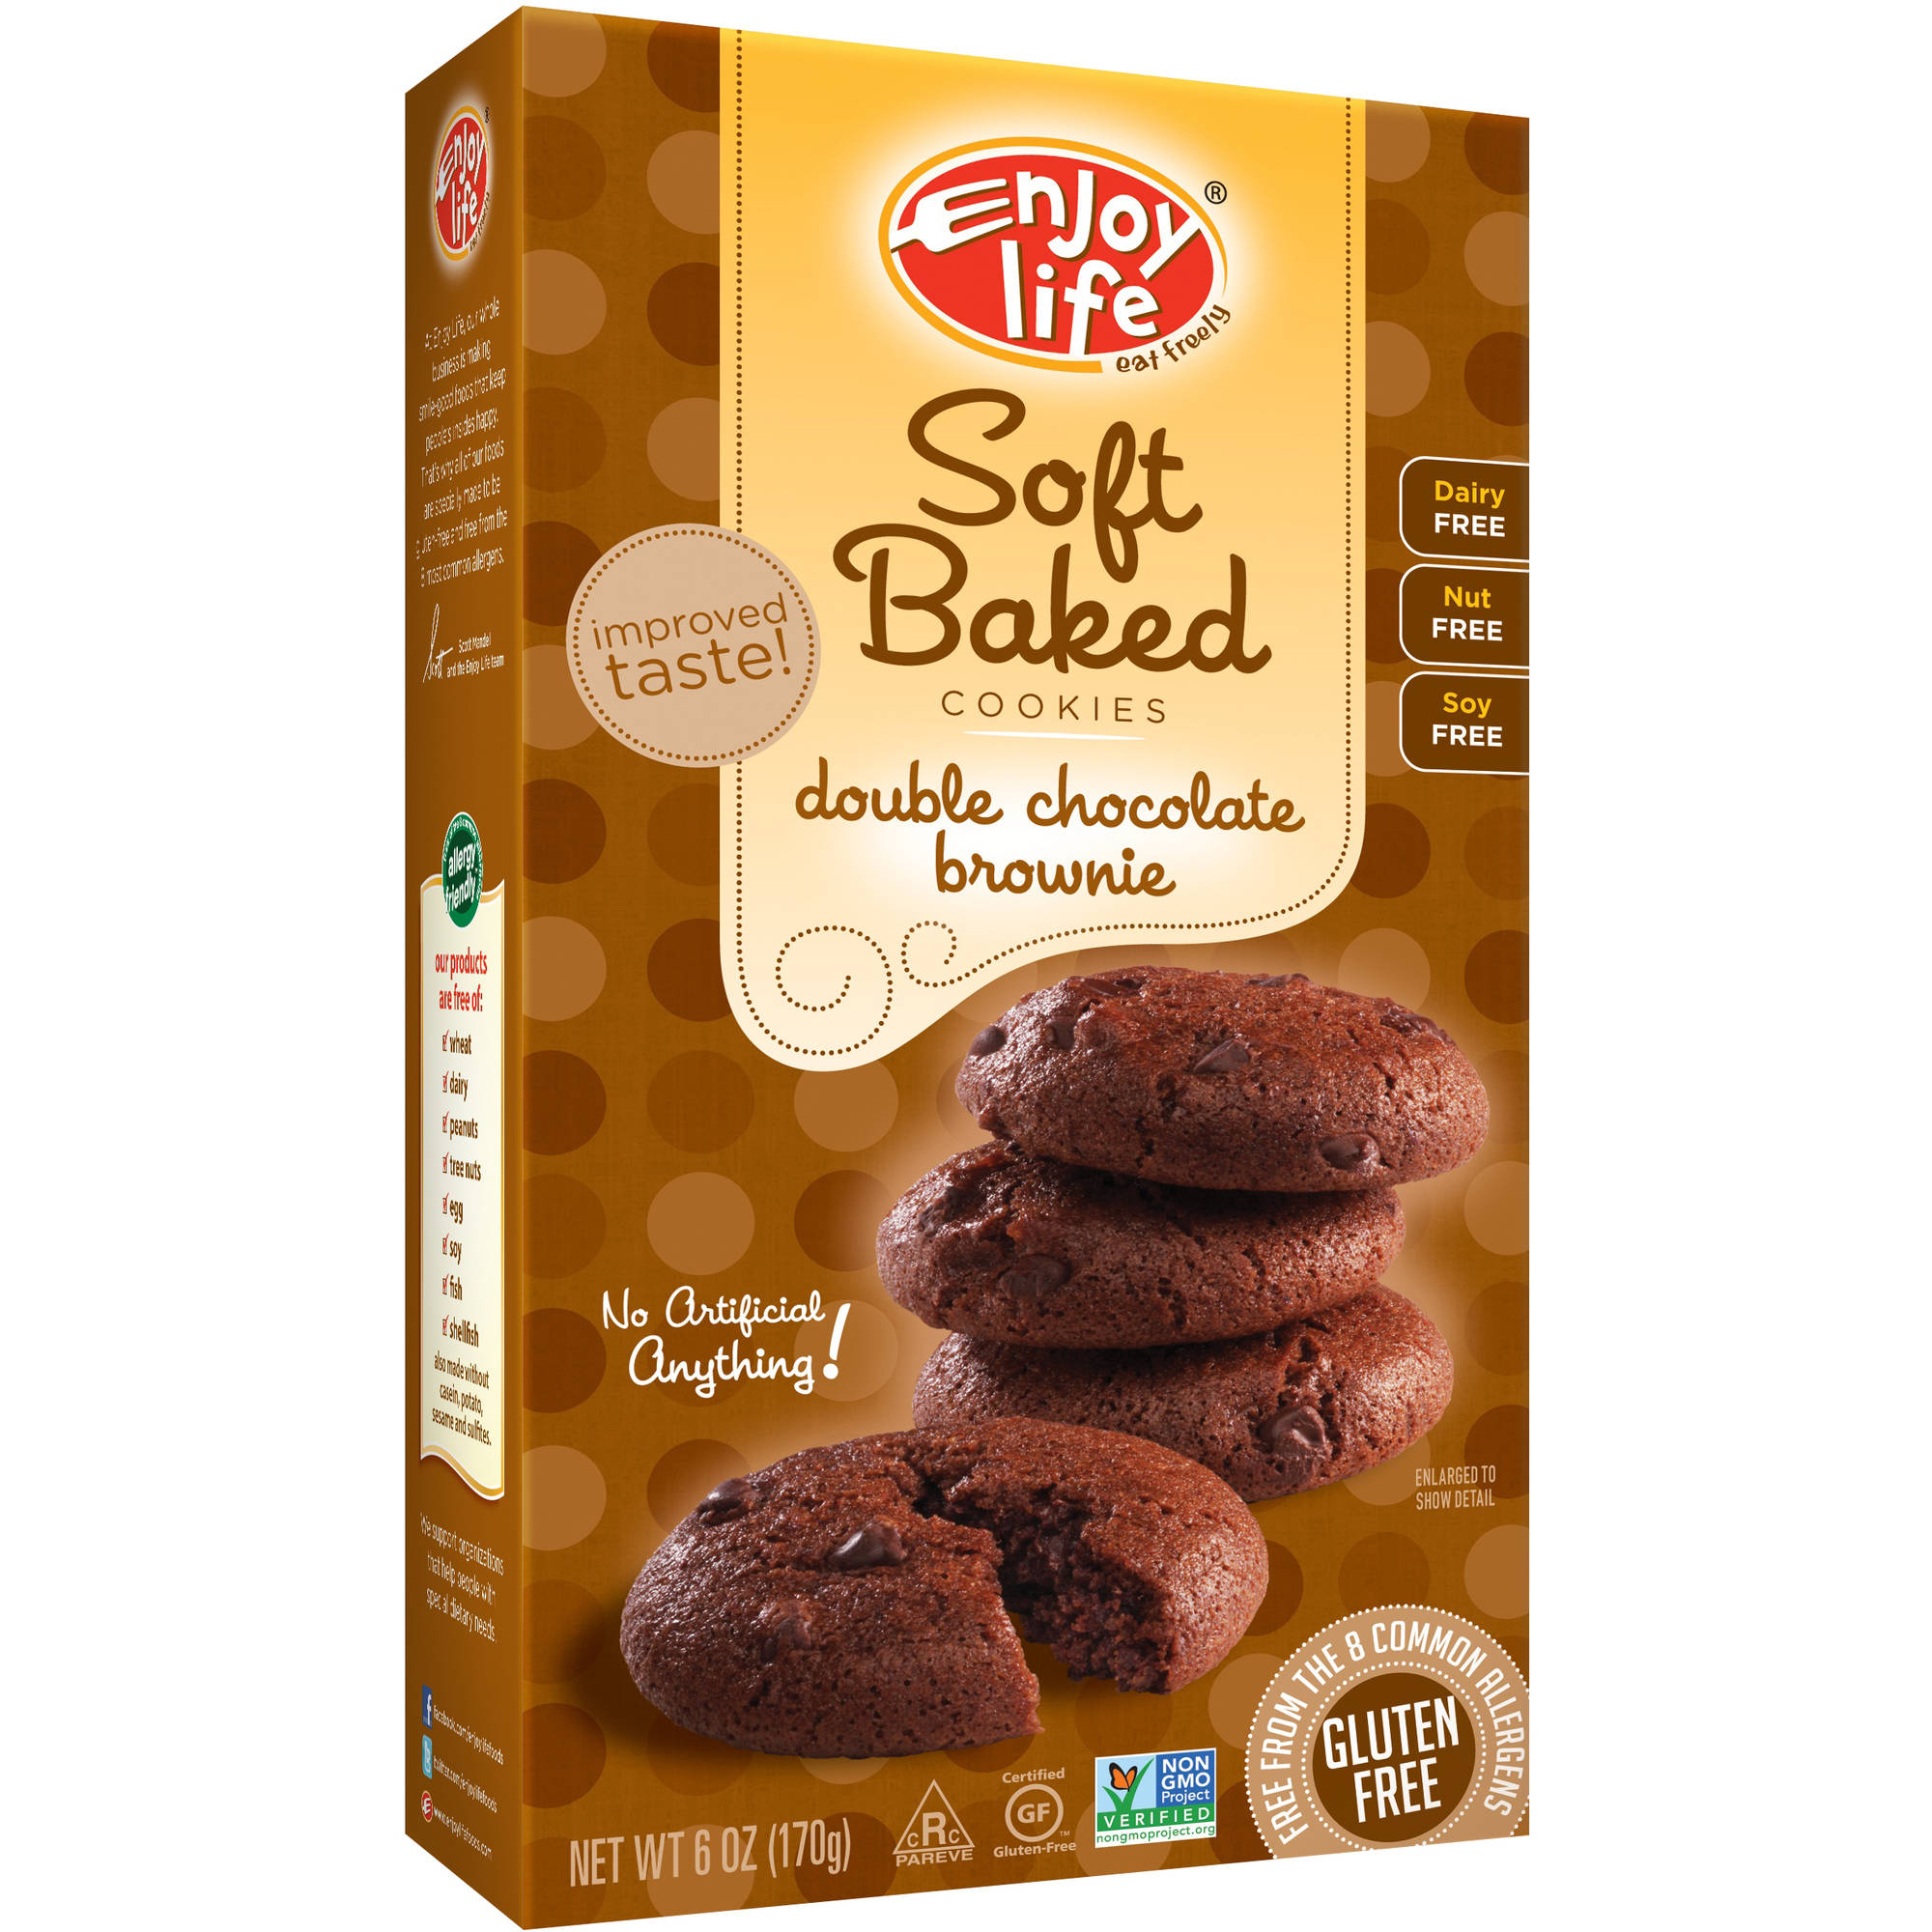 Enjoy Life Gluten-Free, Nut-Free Double Chocolate Brownie Soft Baked Cookies, 6 oz (Pack of 6)